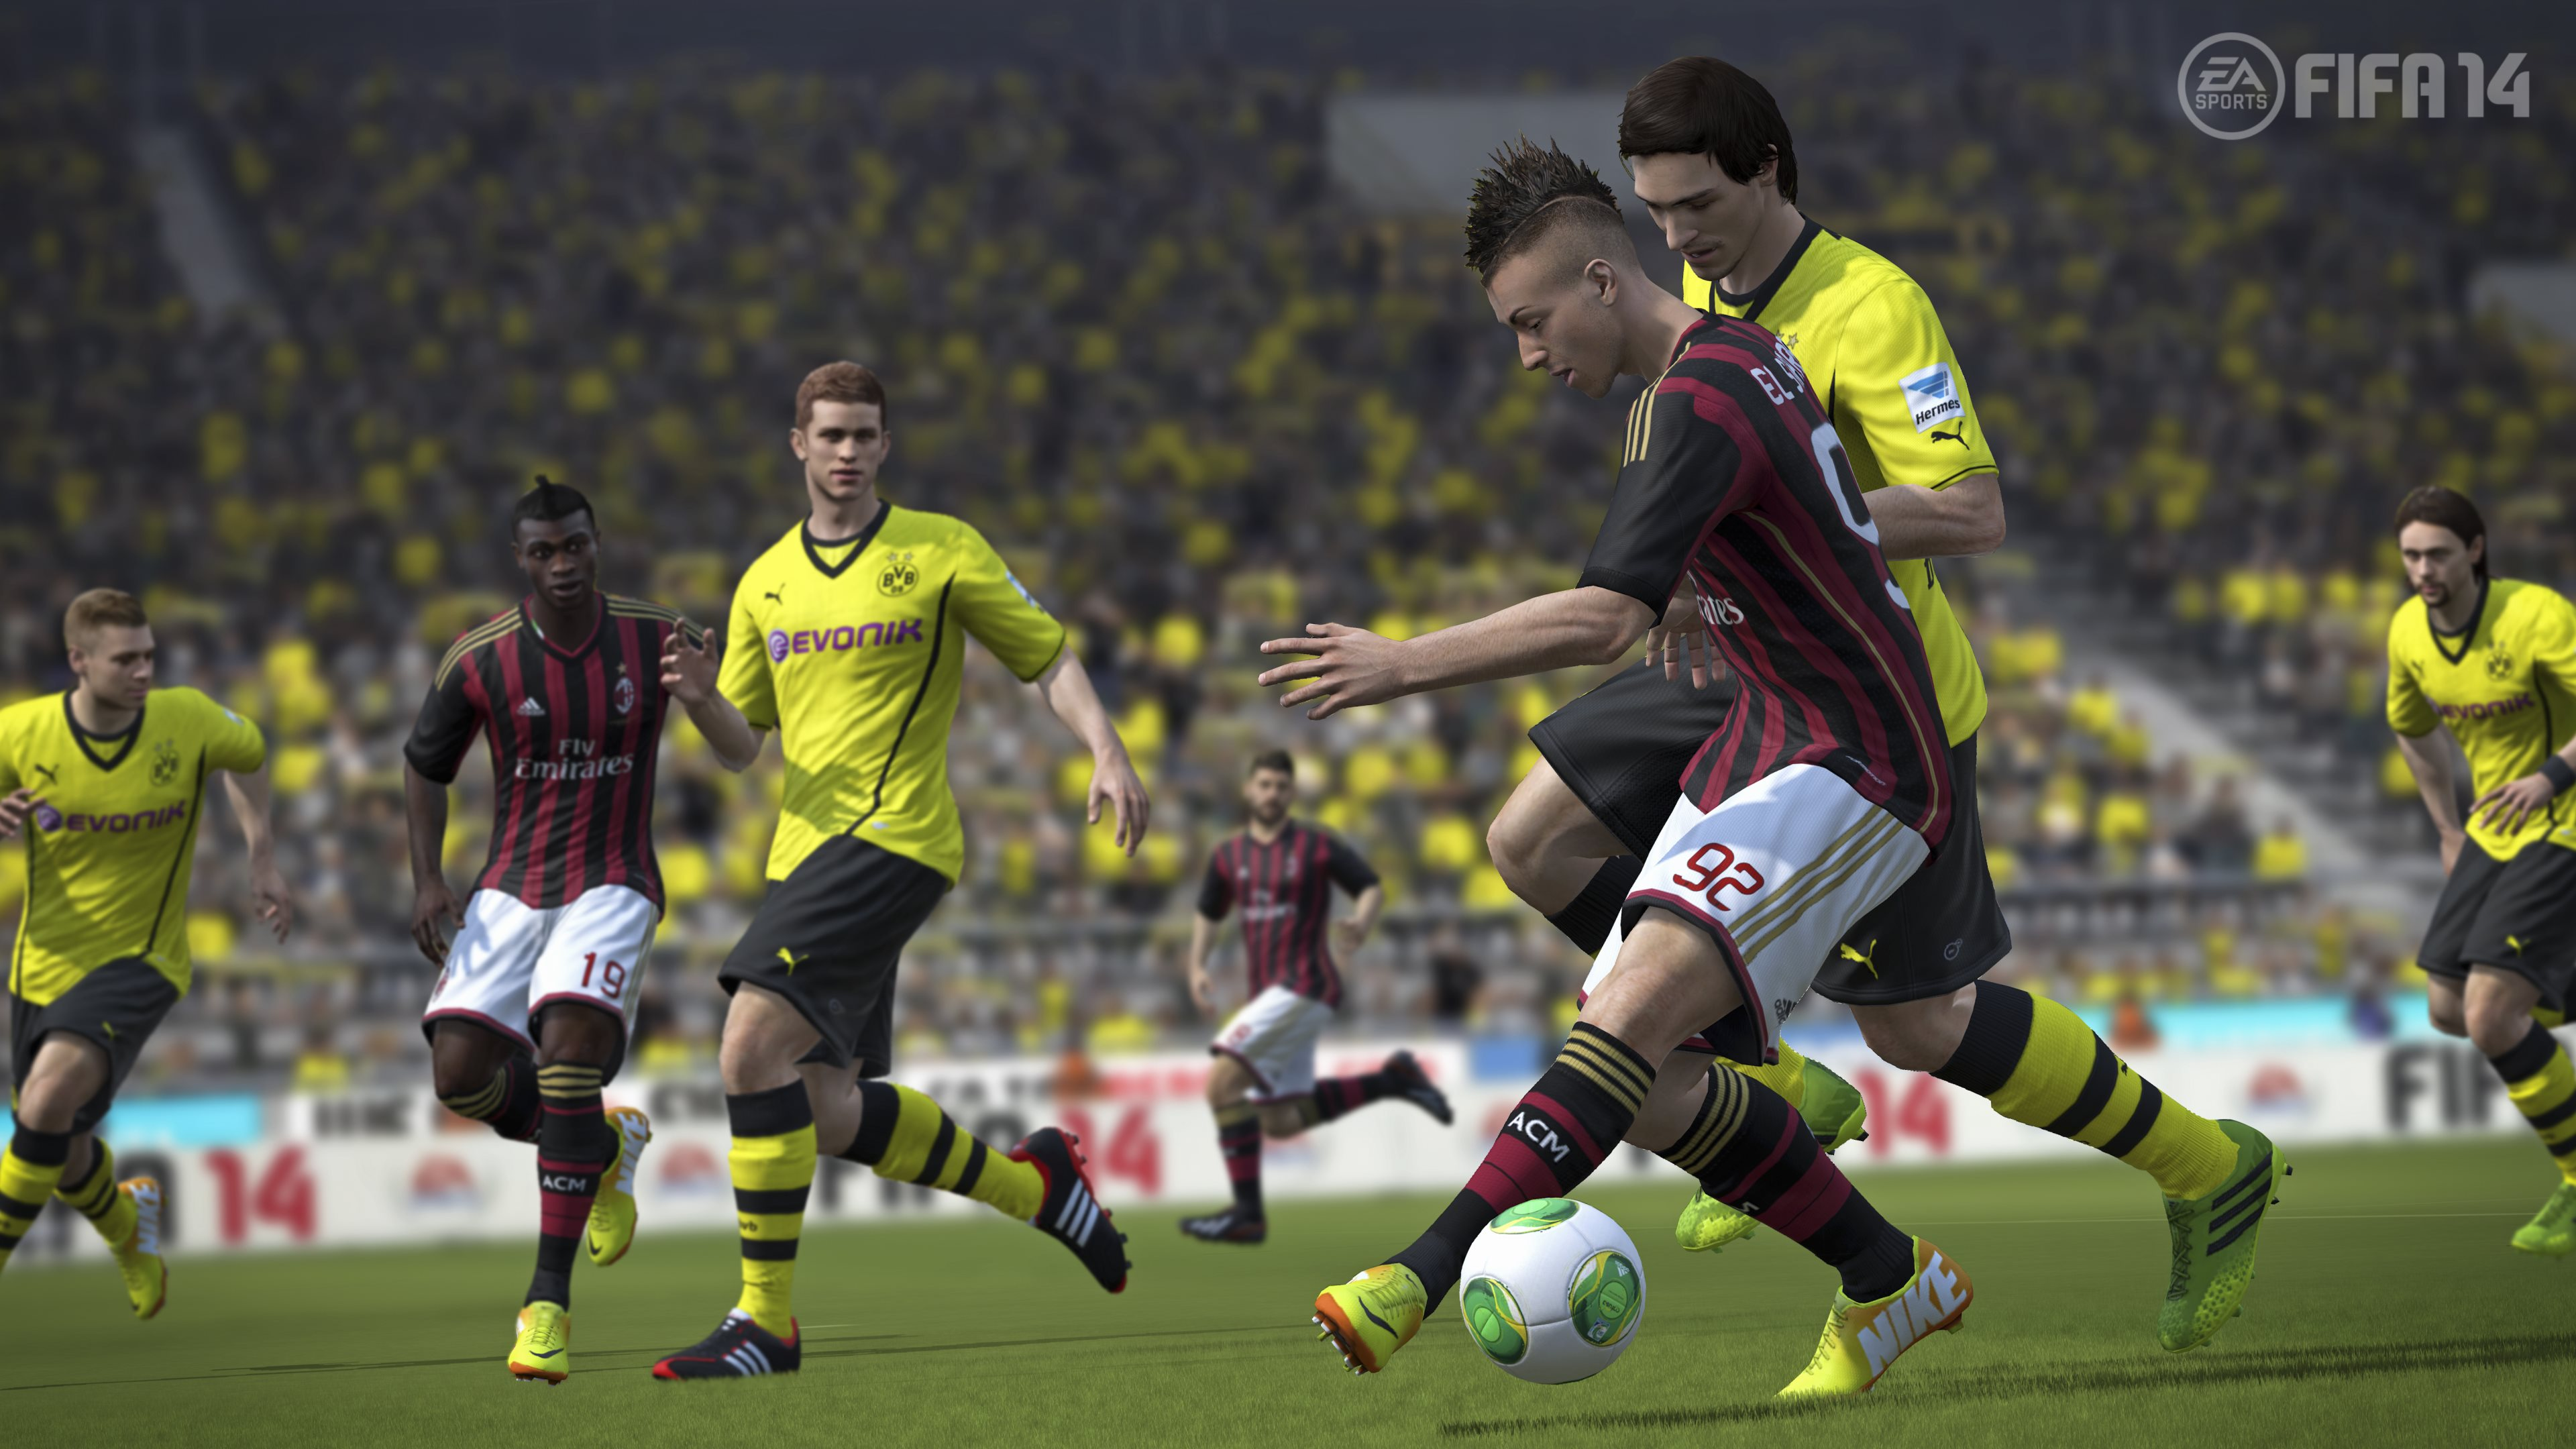 Fifa 14 4k ultra hd wallpaper and background image 3840x2160 id video game fifa 14 fifa14 wallpaper voltagebd Images